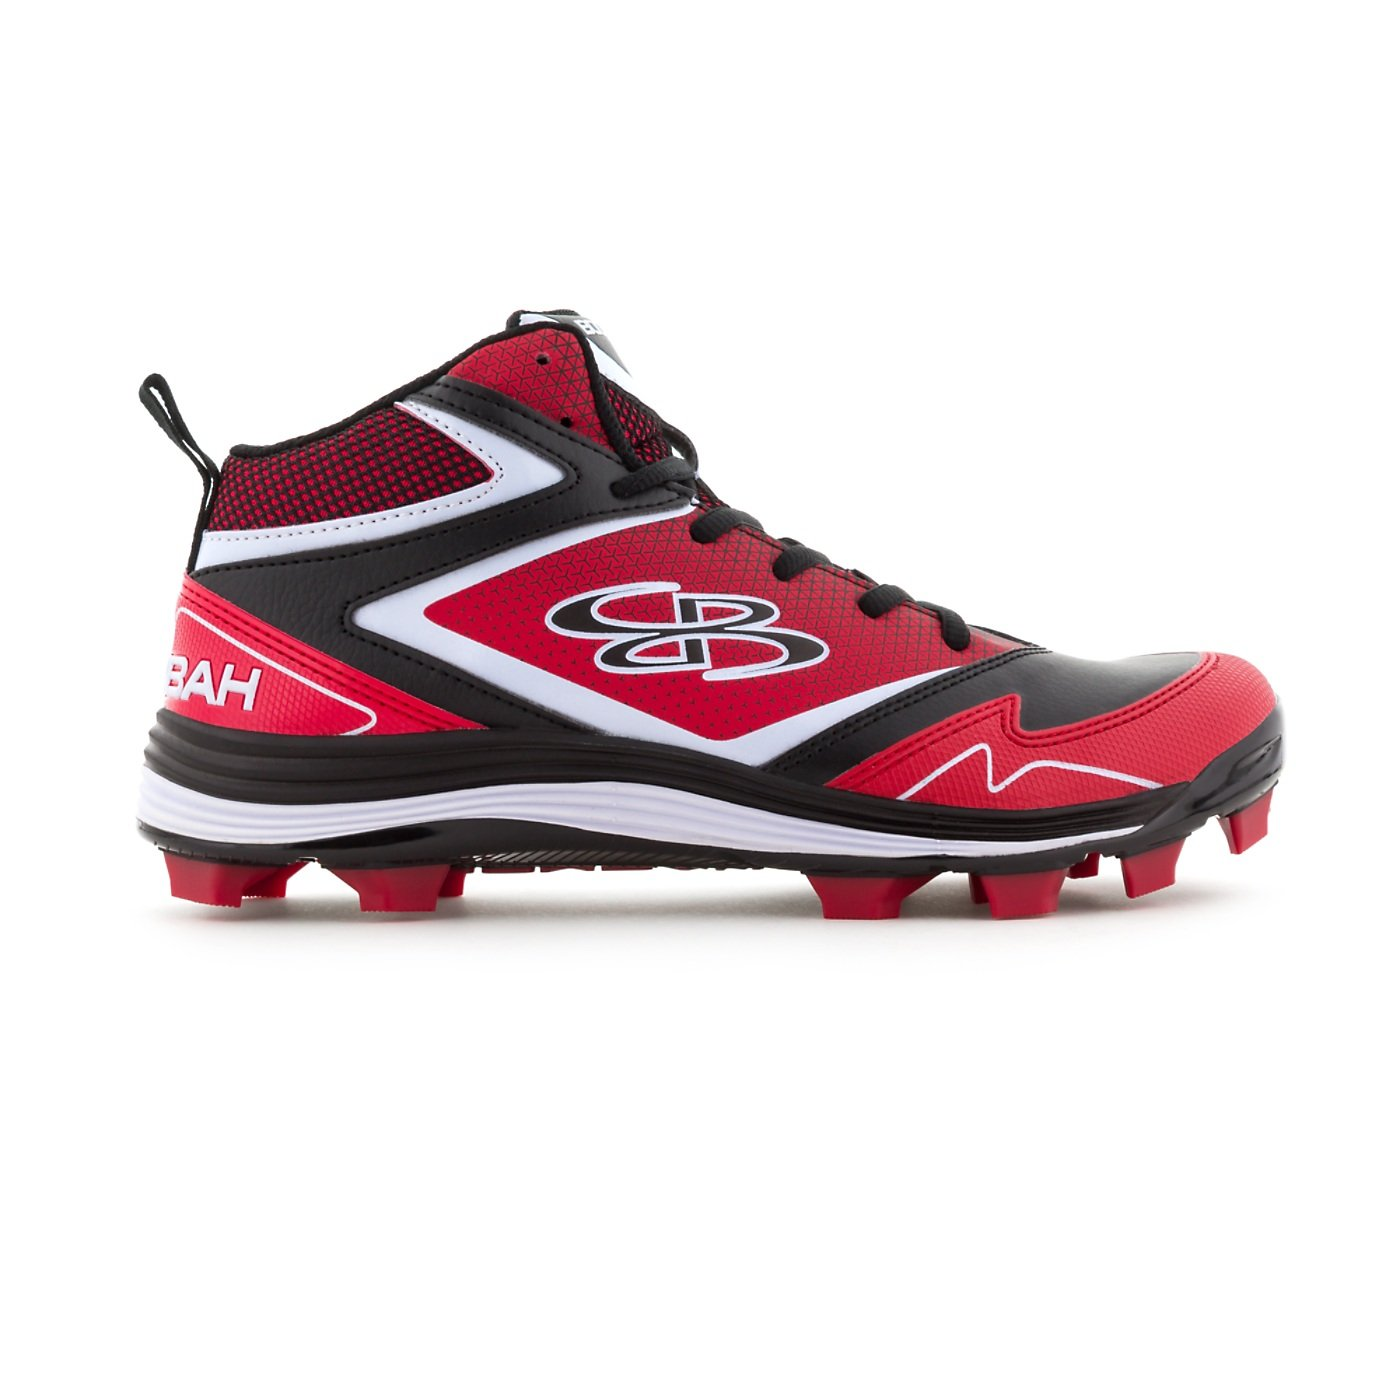 Boombah Women's A-Game Molded Mid Cleats Black/Red - Size 7.5 by Boombah